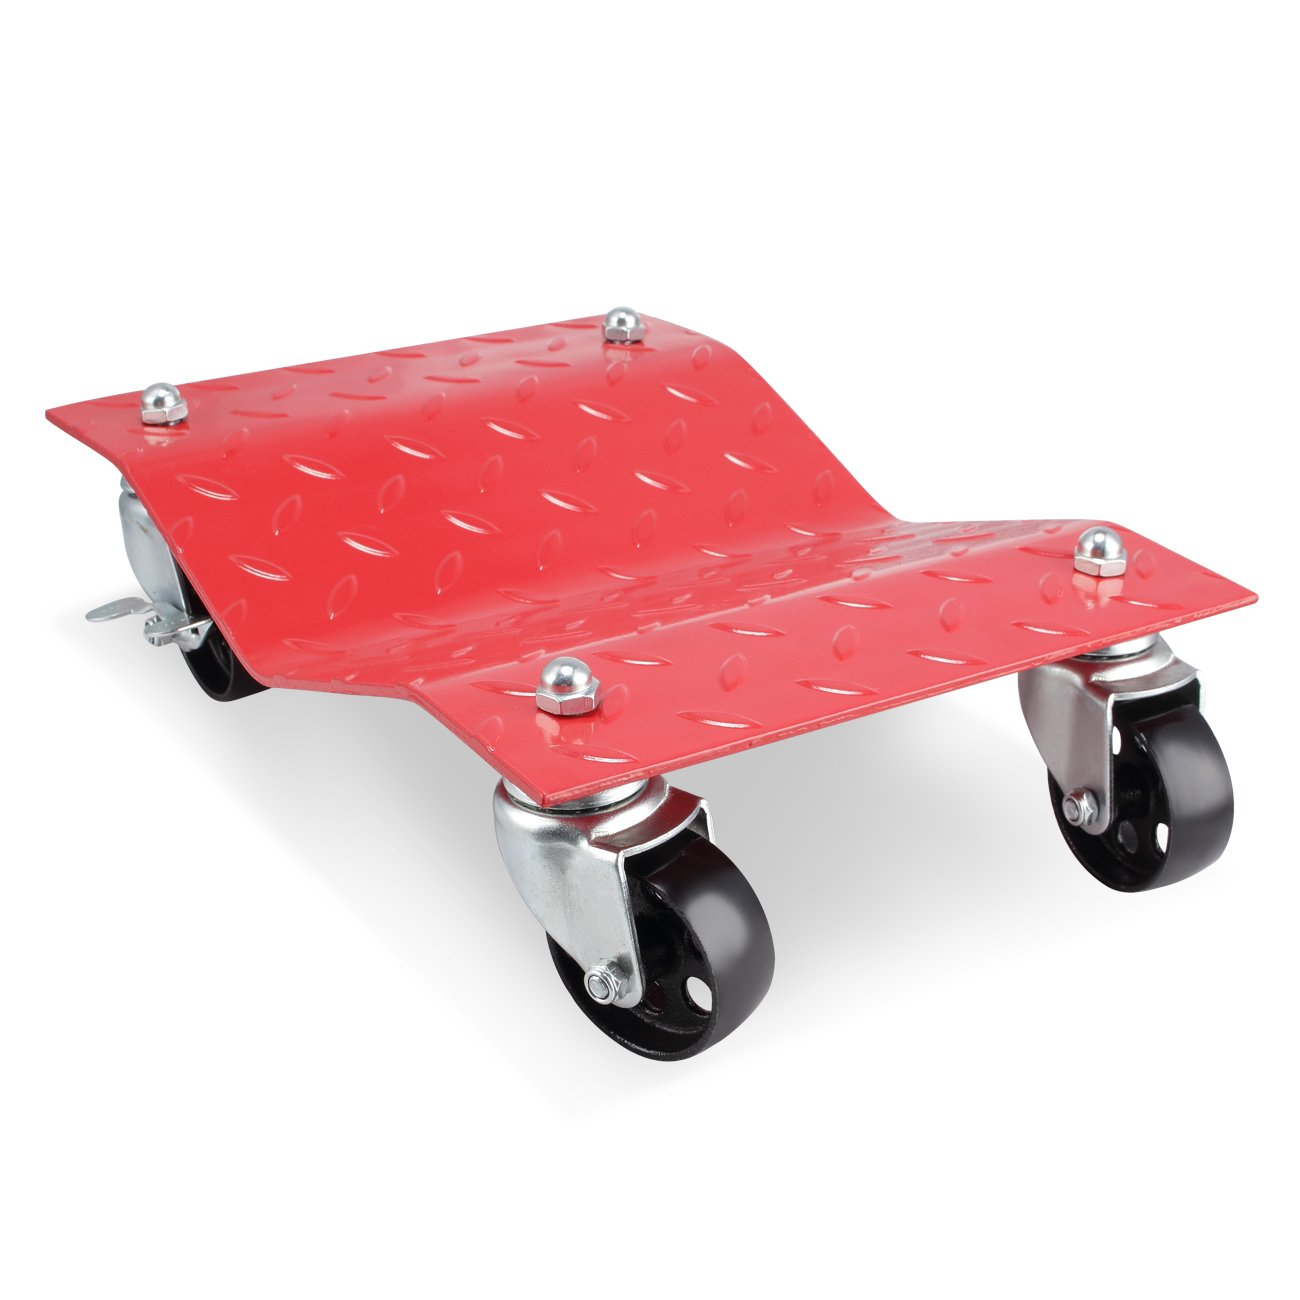 ARKSEN 2 Pack Set Heavy Duty Dollies Car Auto Repair Dolly Tire Skates Vehicle Moving Diamond w/Wheels & Lock, Red by ARKSEN (Image #4)